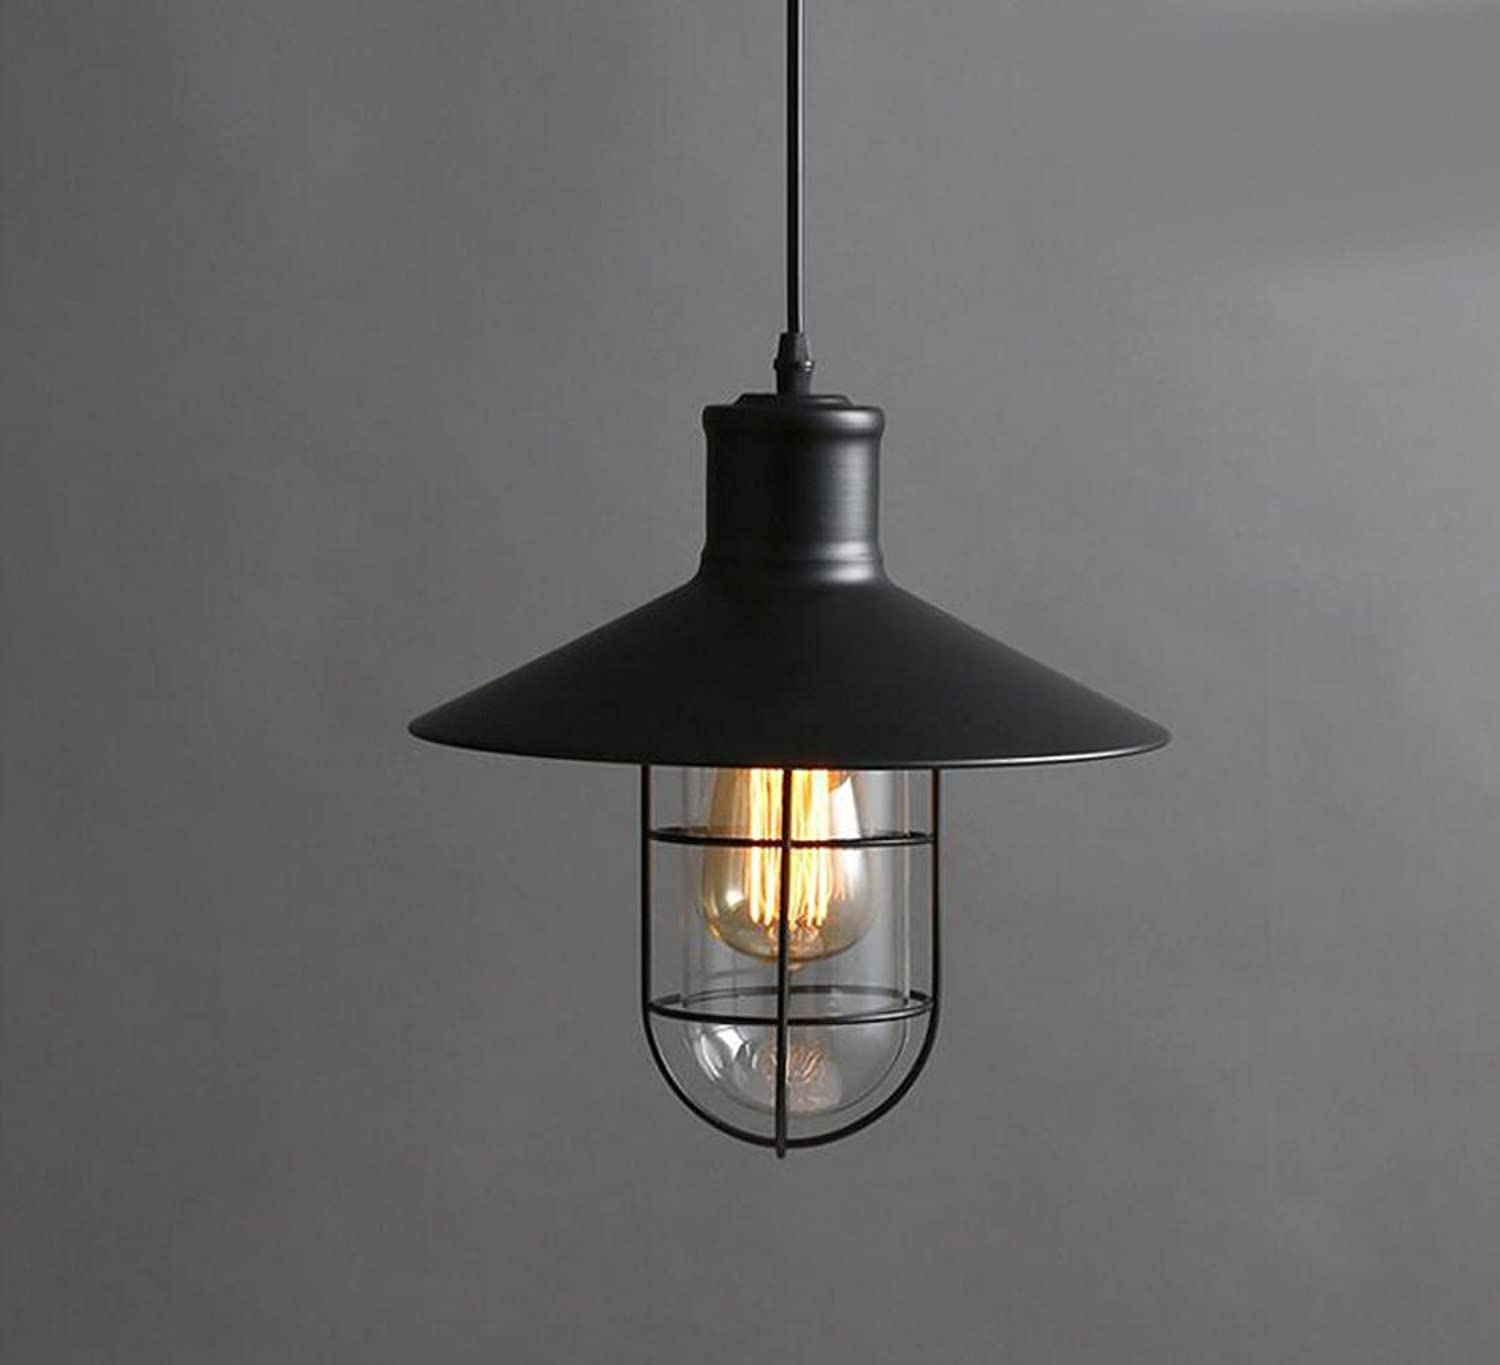 American Single Head Wrought Iron Pot Lid Hanging Lamps Retro Industrial Style Pendant Lights Cafe Restaurant Bar Table loft Ceiling Hanging Light(Without Bulb)